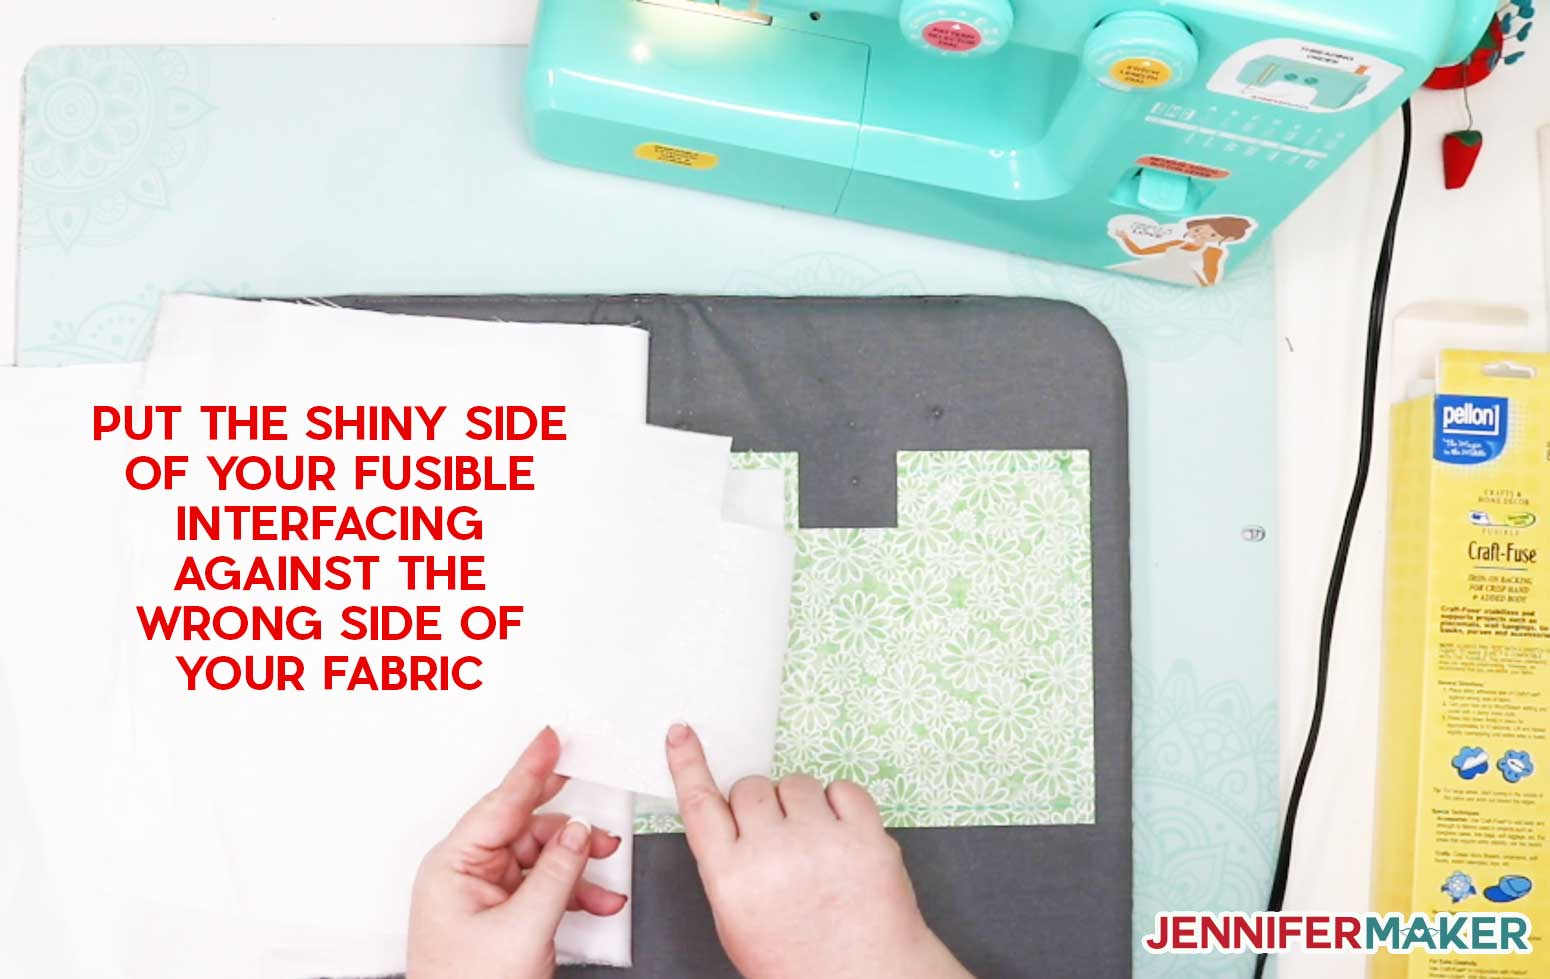 Fusible Interfacing goes shiny side against the wrong side of your fabric to make the Couch Caddy Craft Organizer